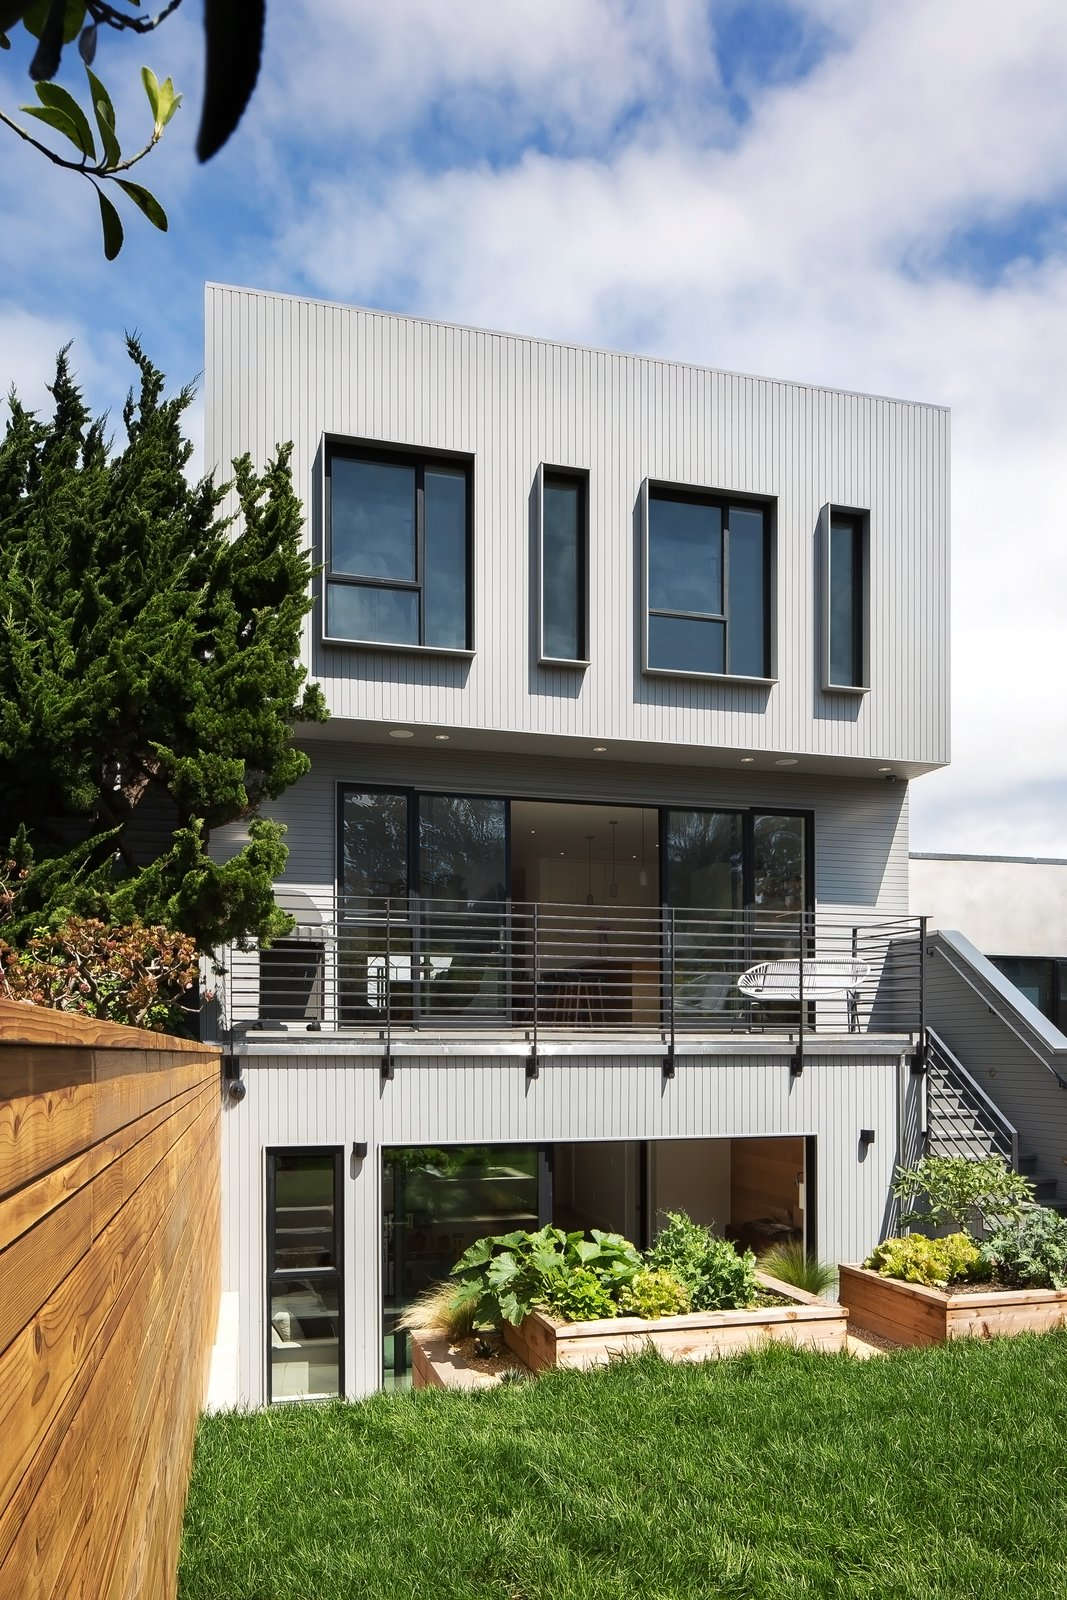 Rear facade Tagged: Exterior, House, and Flat RoofLine.  27th Street - Noe Valley by patrick perez/designpad architecture